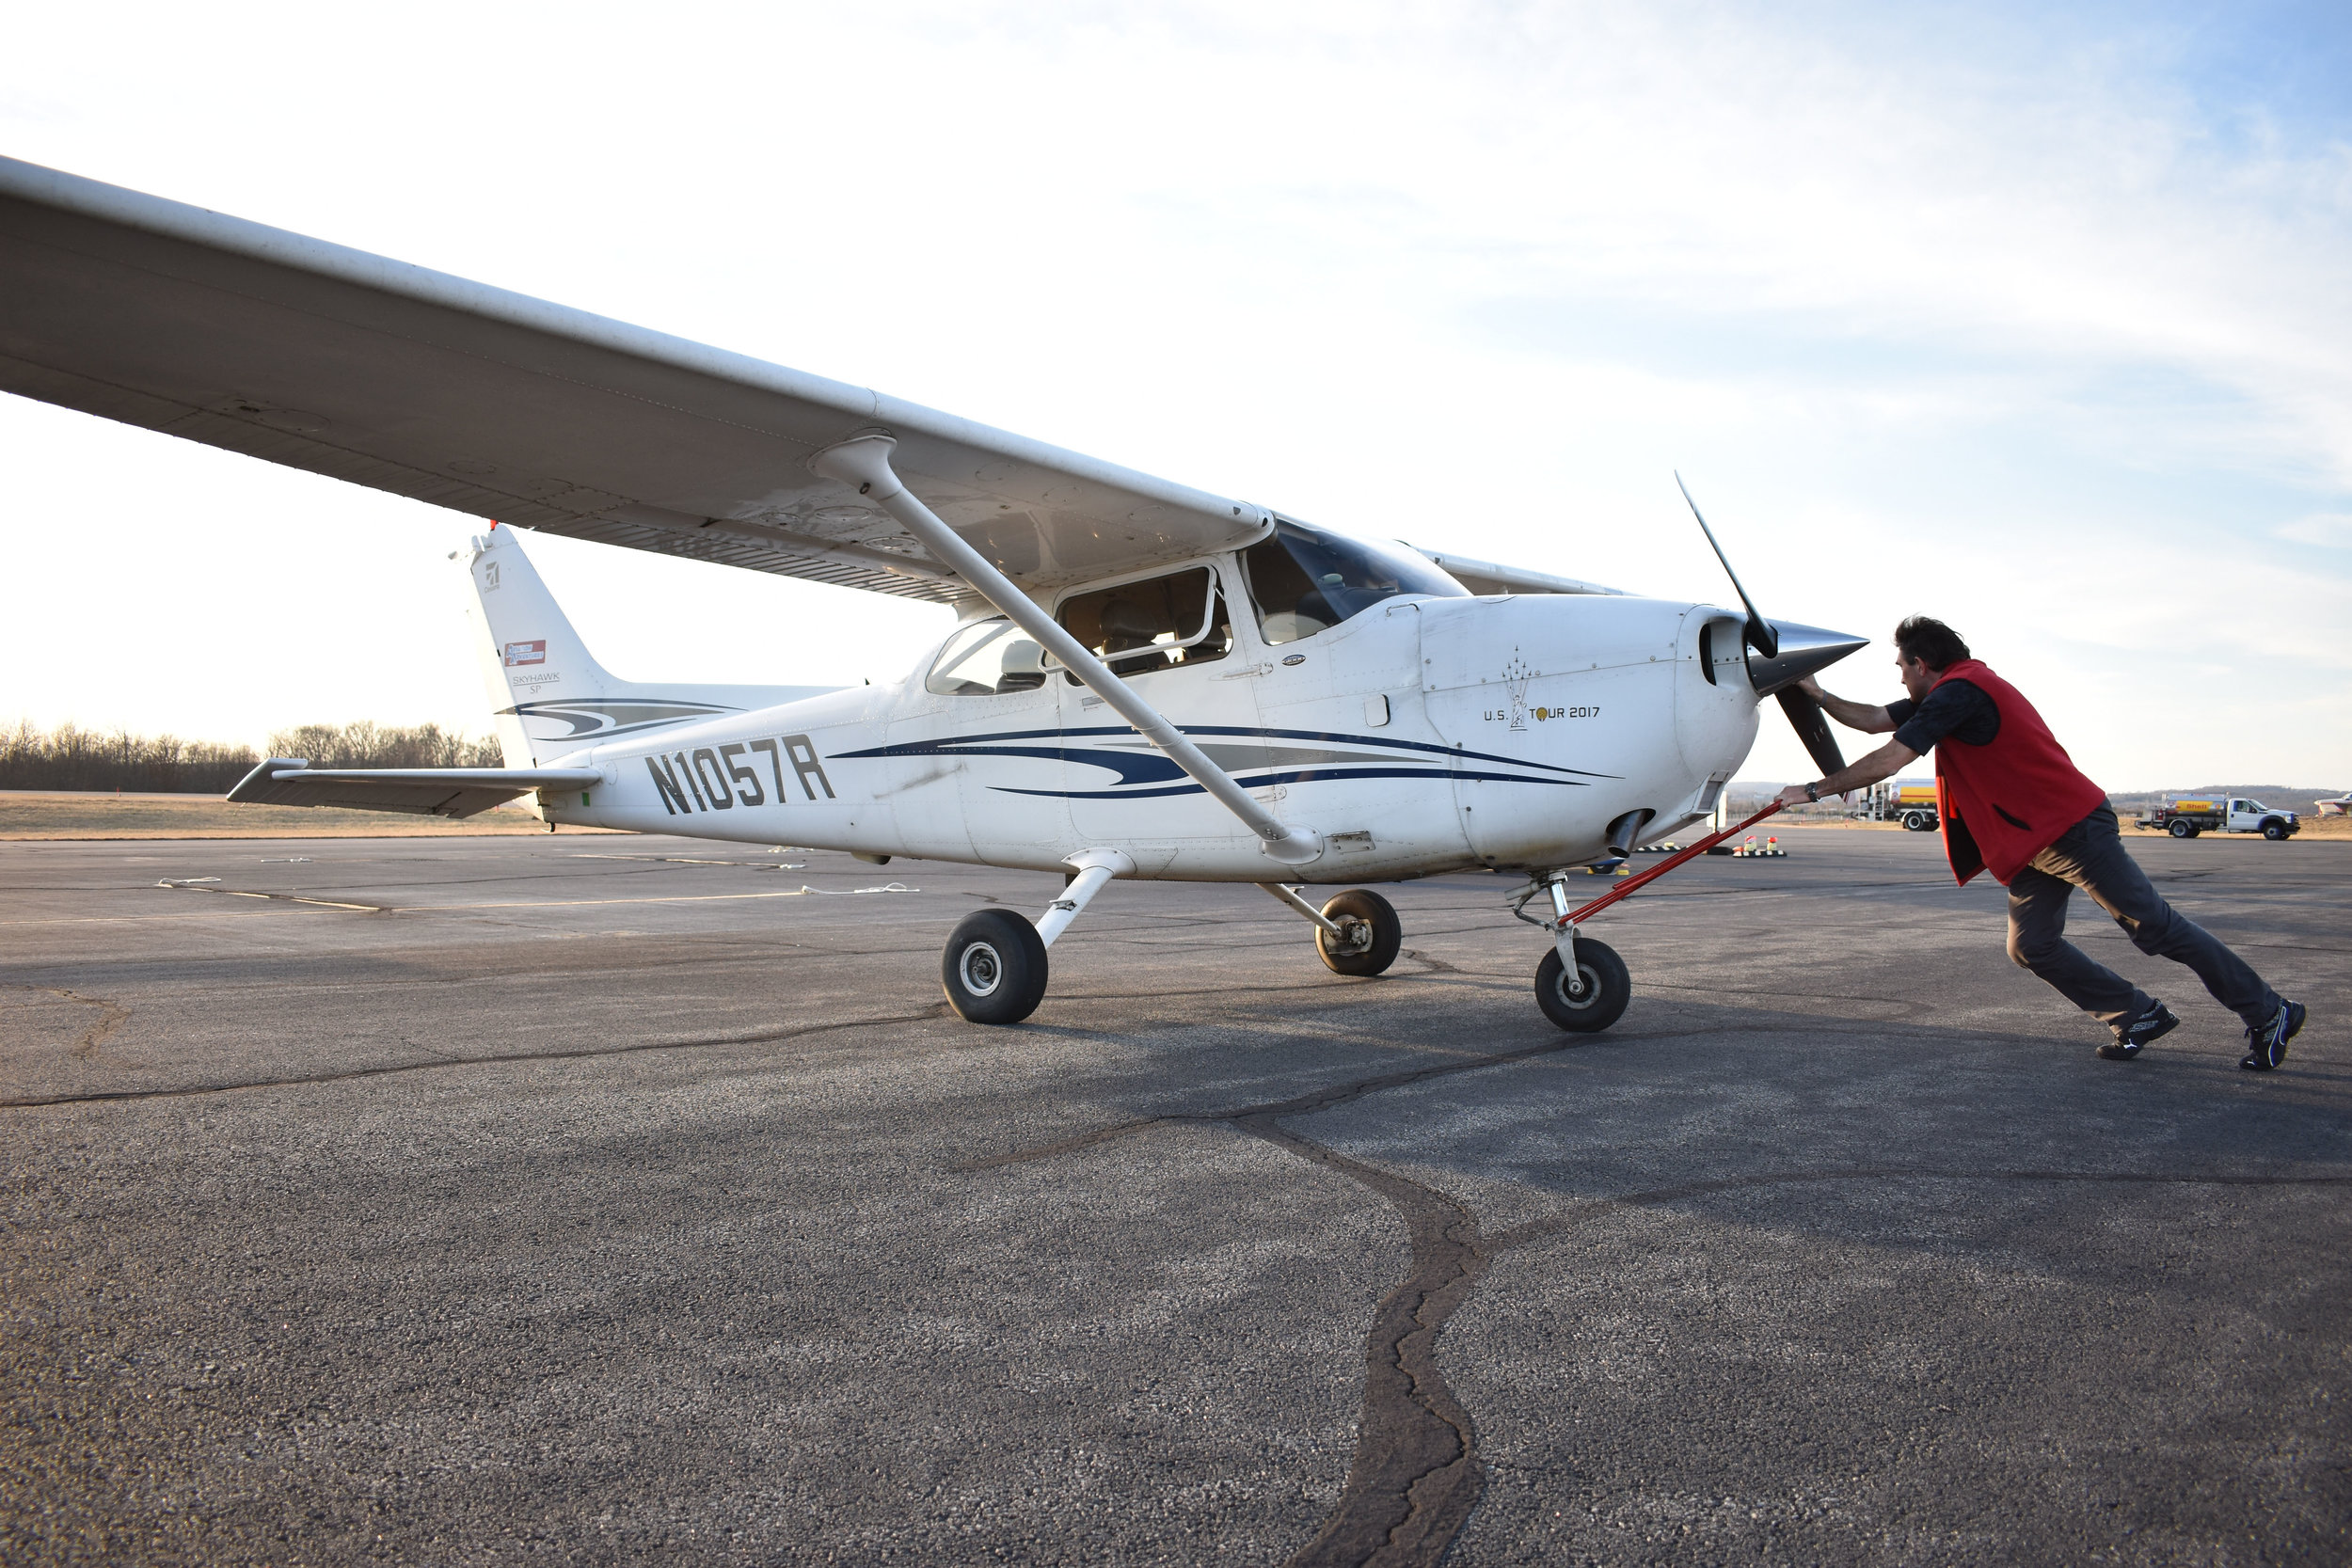 Raymond de Haan, assistant chief flight instructor at Aviation Adventures in Leesburg, Va., pushes a 2005 Cessna Skyhawk 172SP G1000 back into its parking spot at Leesburg Executive Airport (JYO), Tuesday, Feb. 20, 2018. (Lindsey Leake/American University)